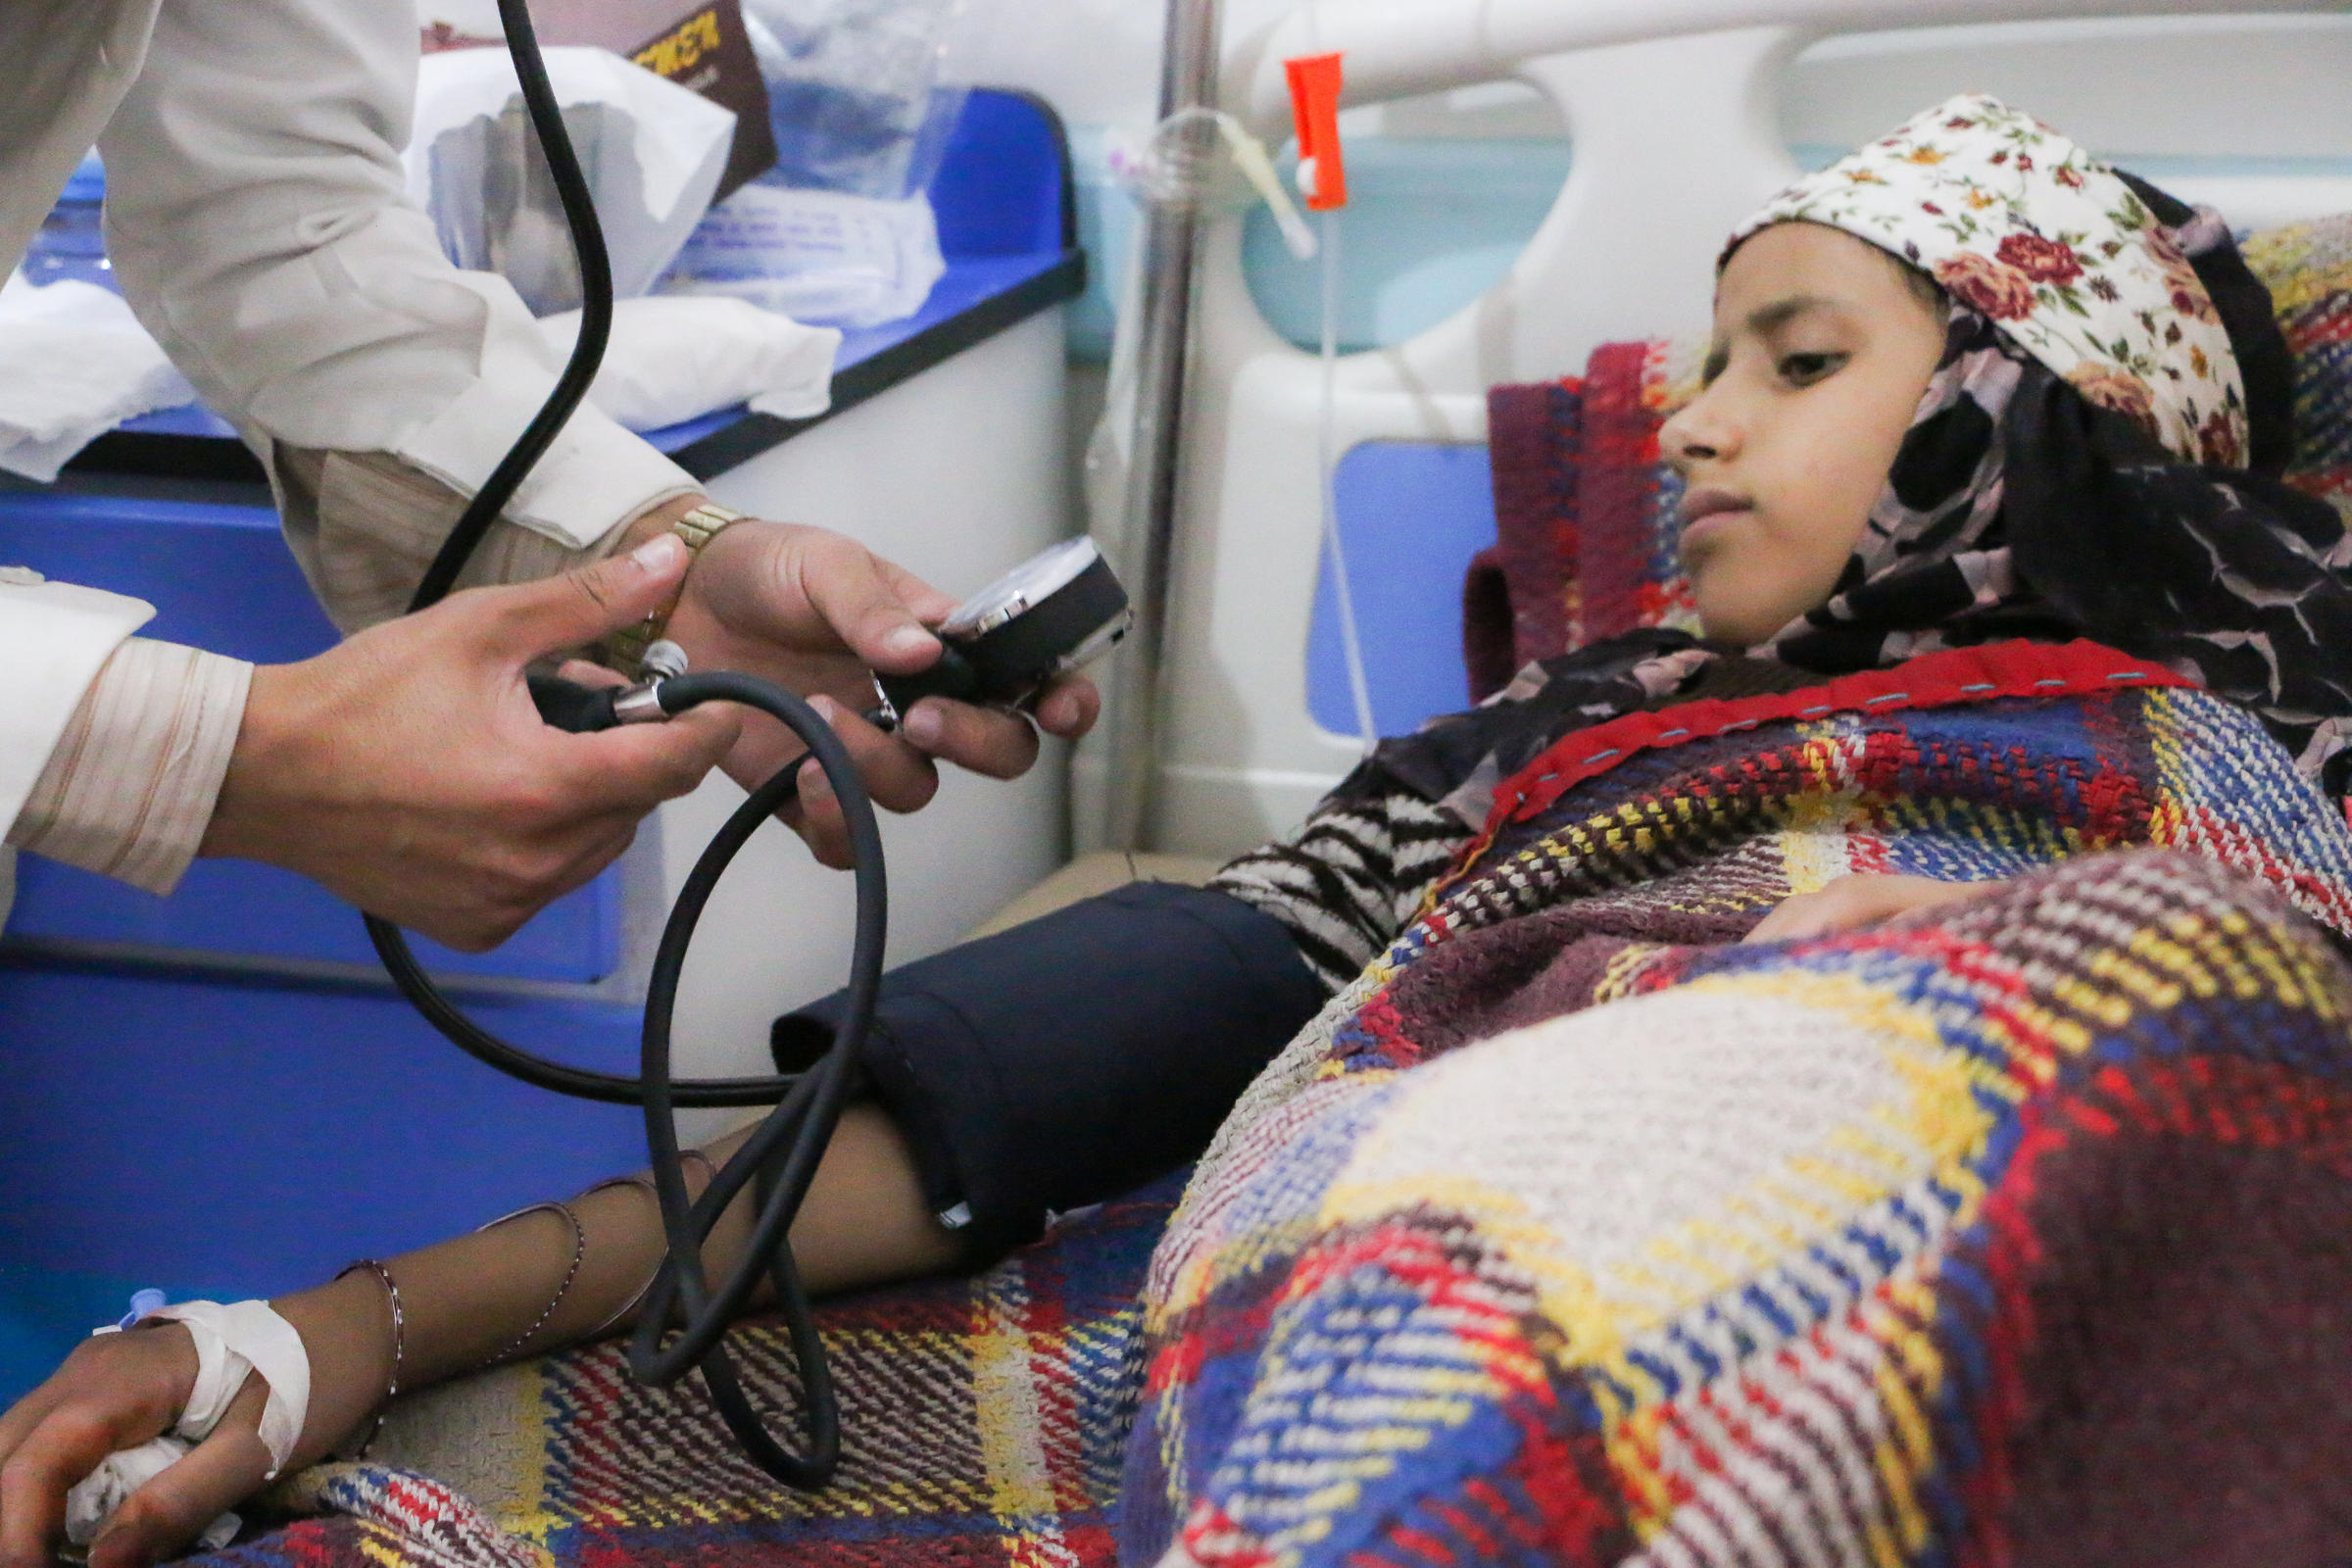 Yemen official: Cholera has killed 746 in war-torn country